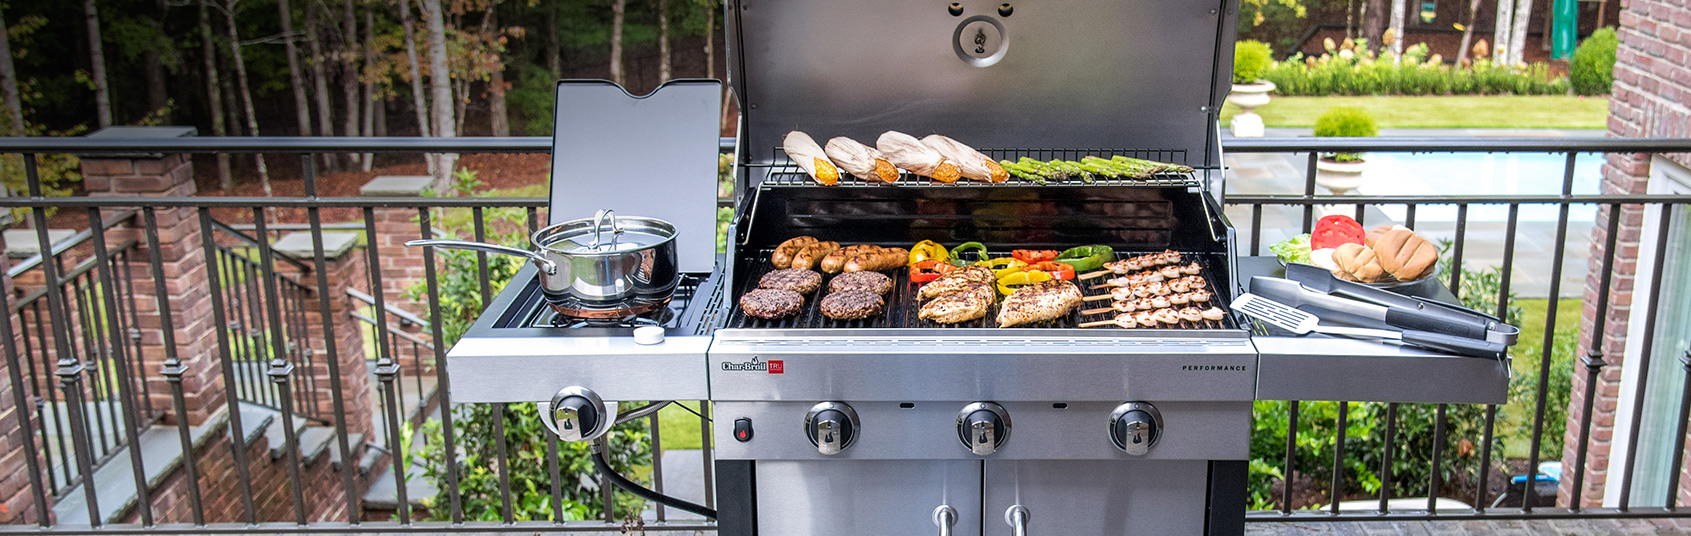 Outdoor Grills | Amazon.com